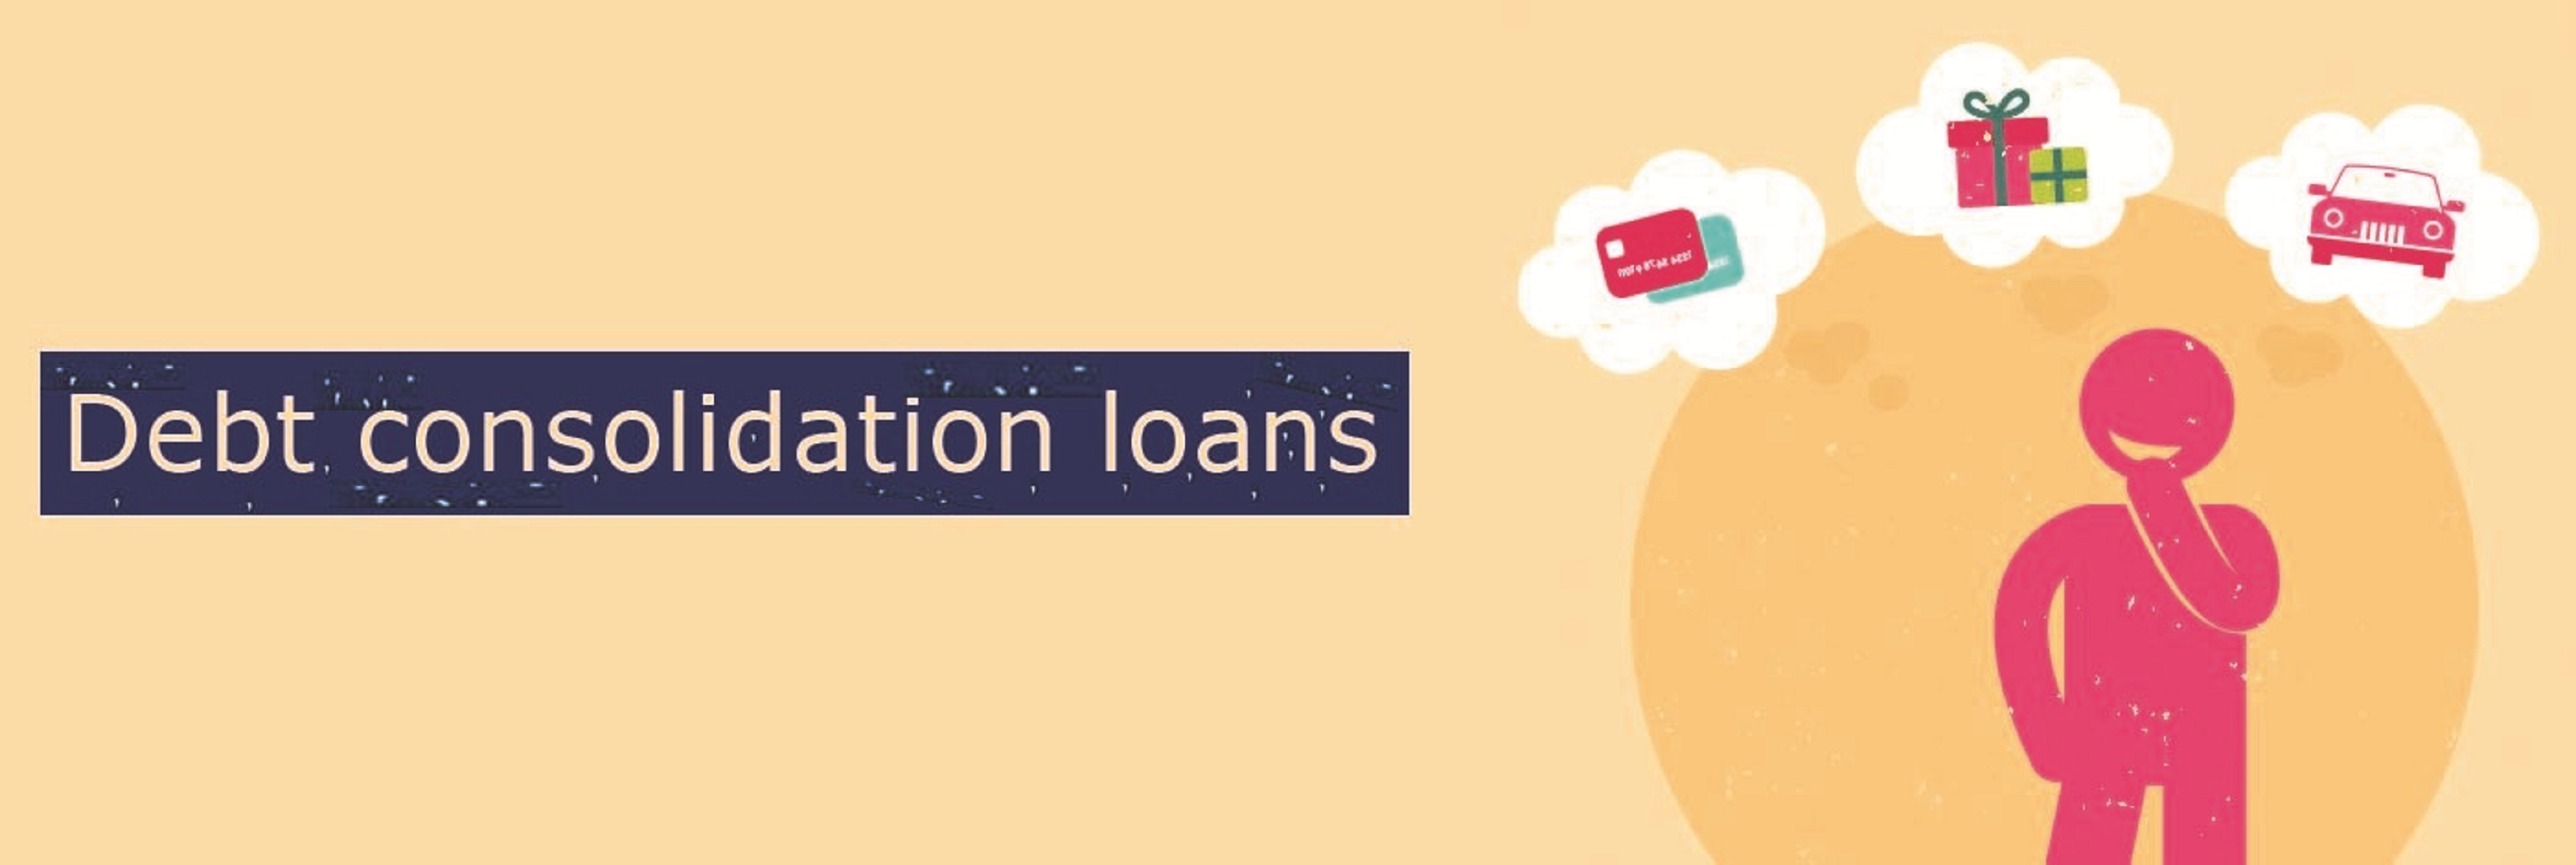 full size debt consolidation compressed banner